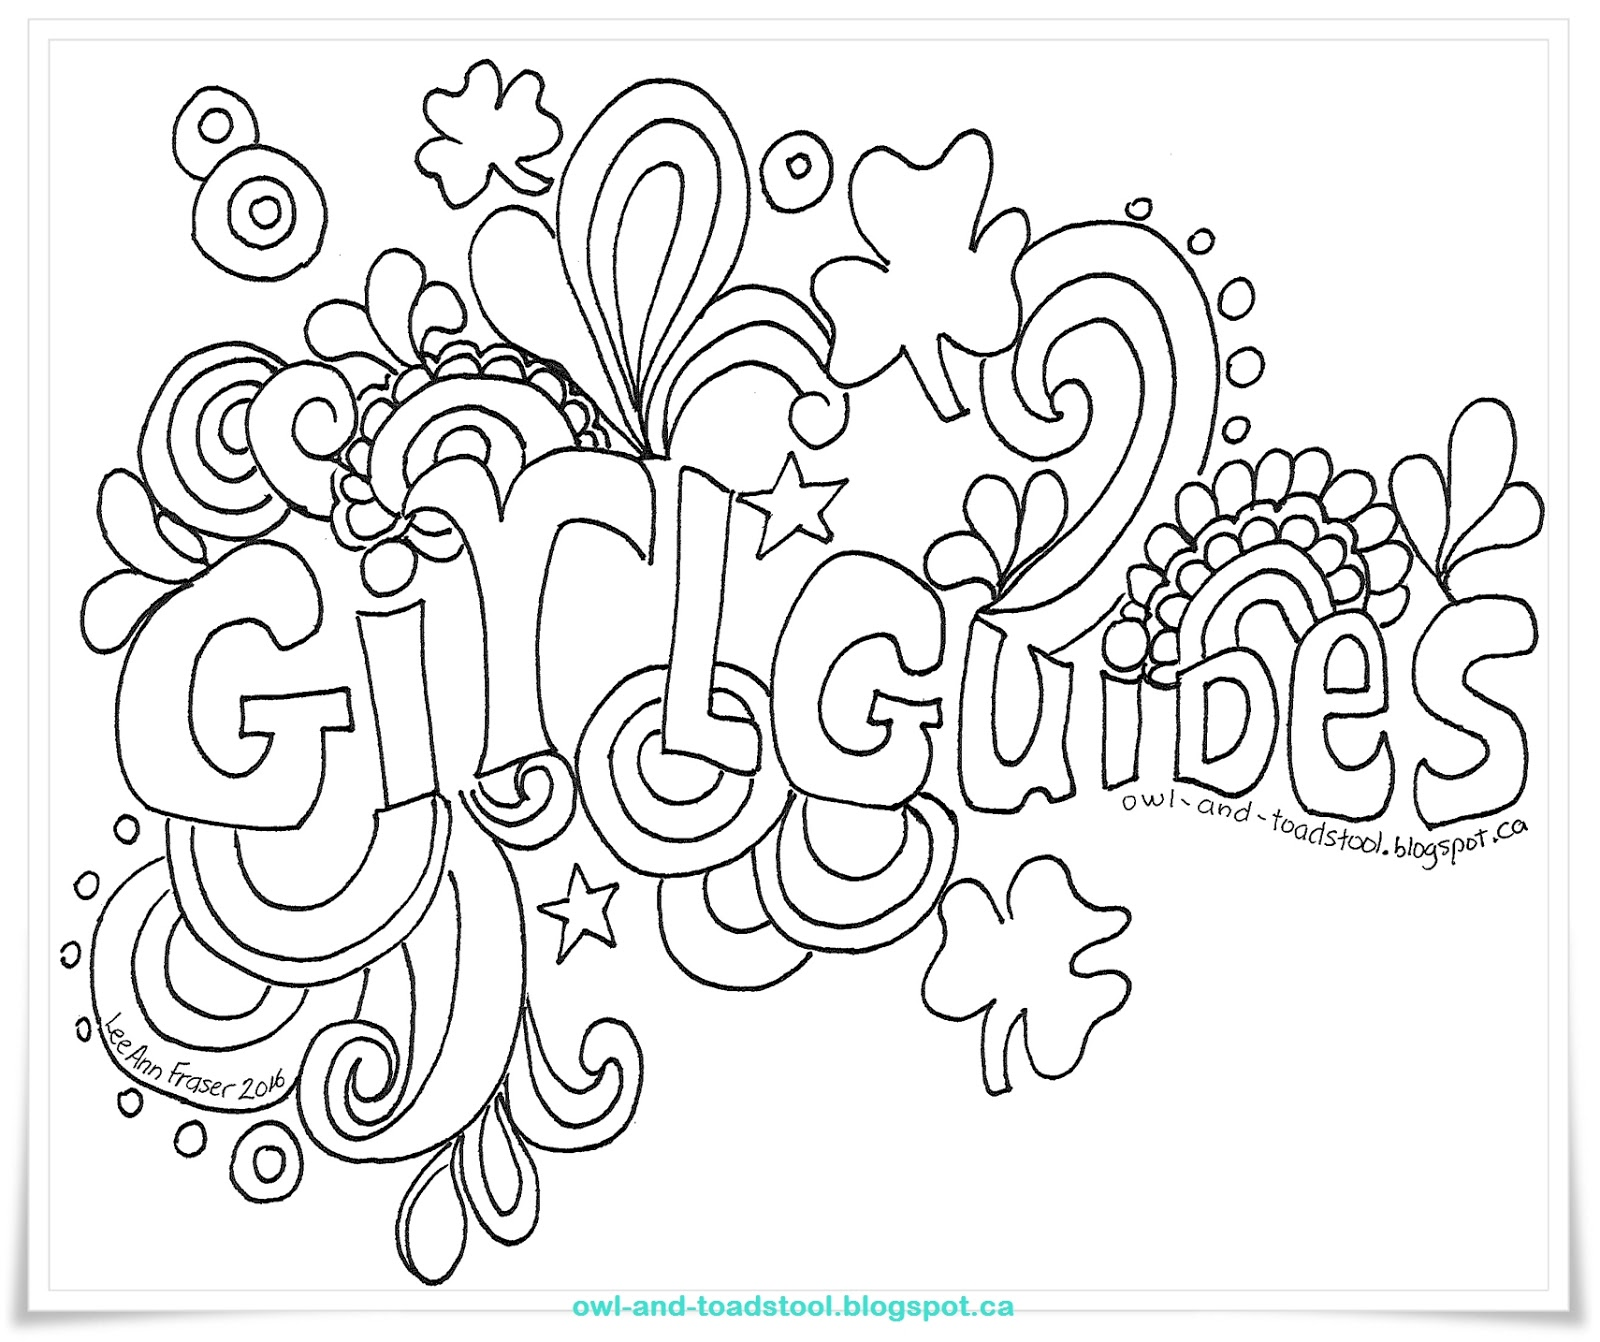 Owl Toadstool Doodle Girl Guides